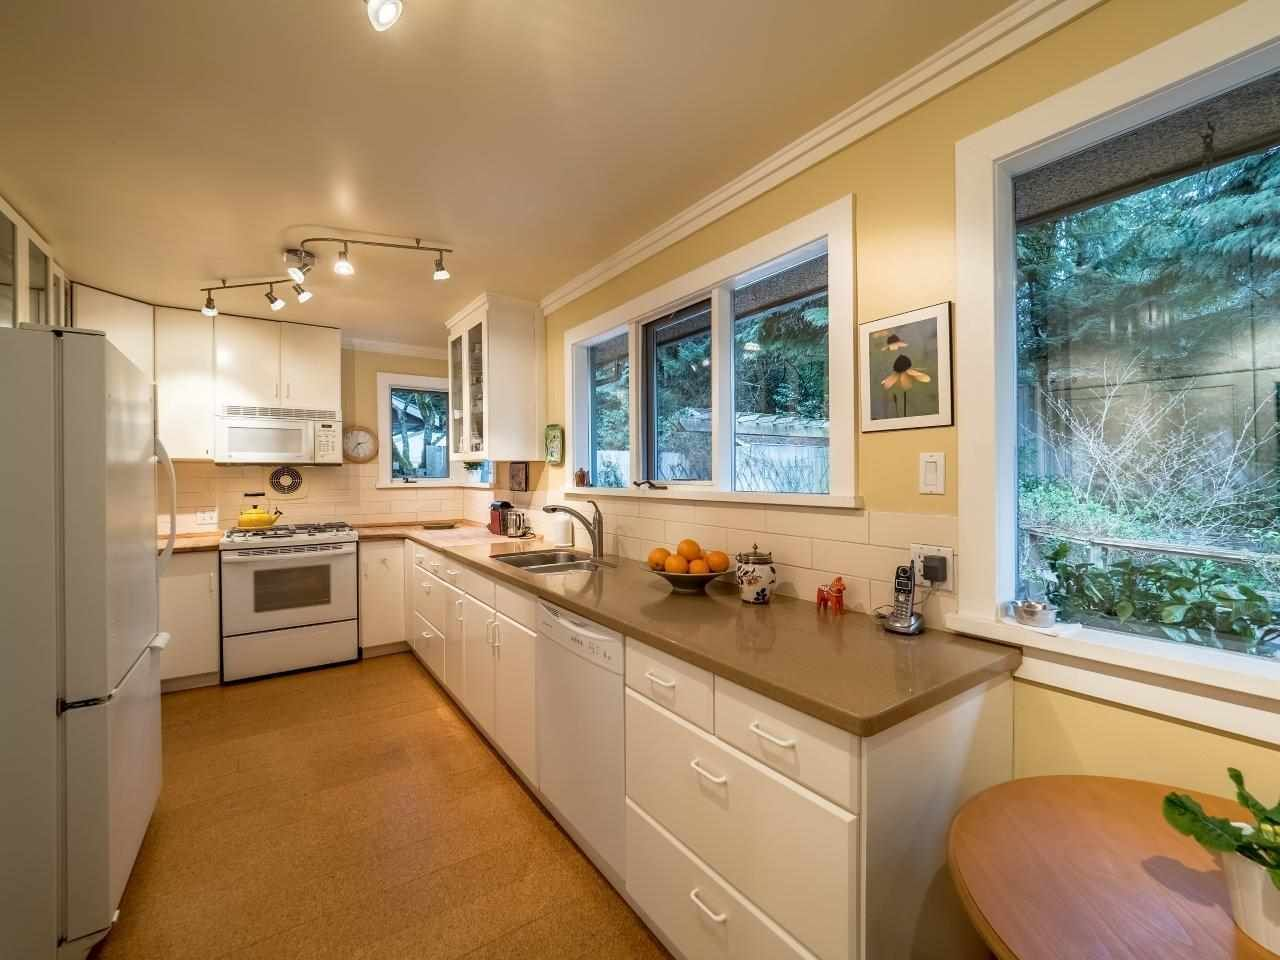 Photo 6: Photos: 3322 WAYNE Drive in North Vancouver: Delbrook House for sale : MLS®# R2045446